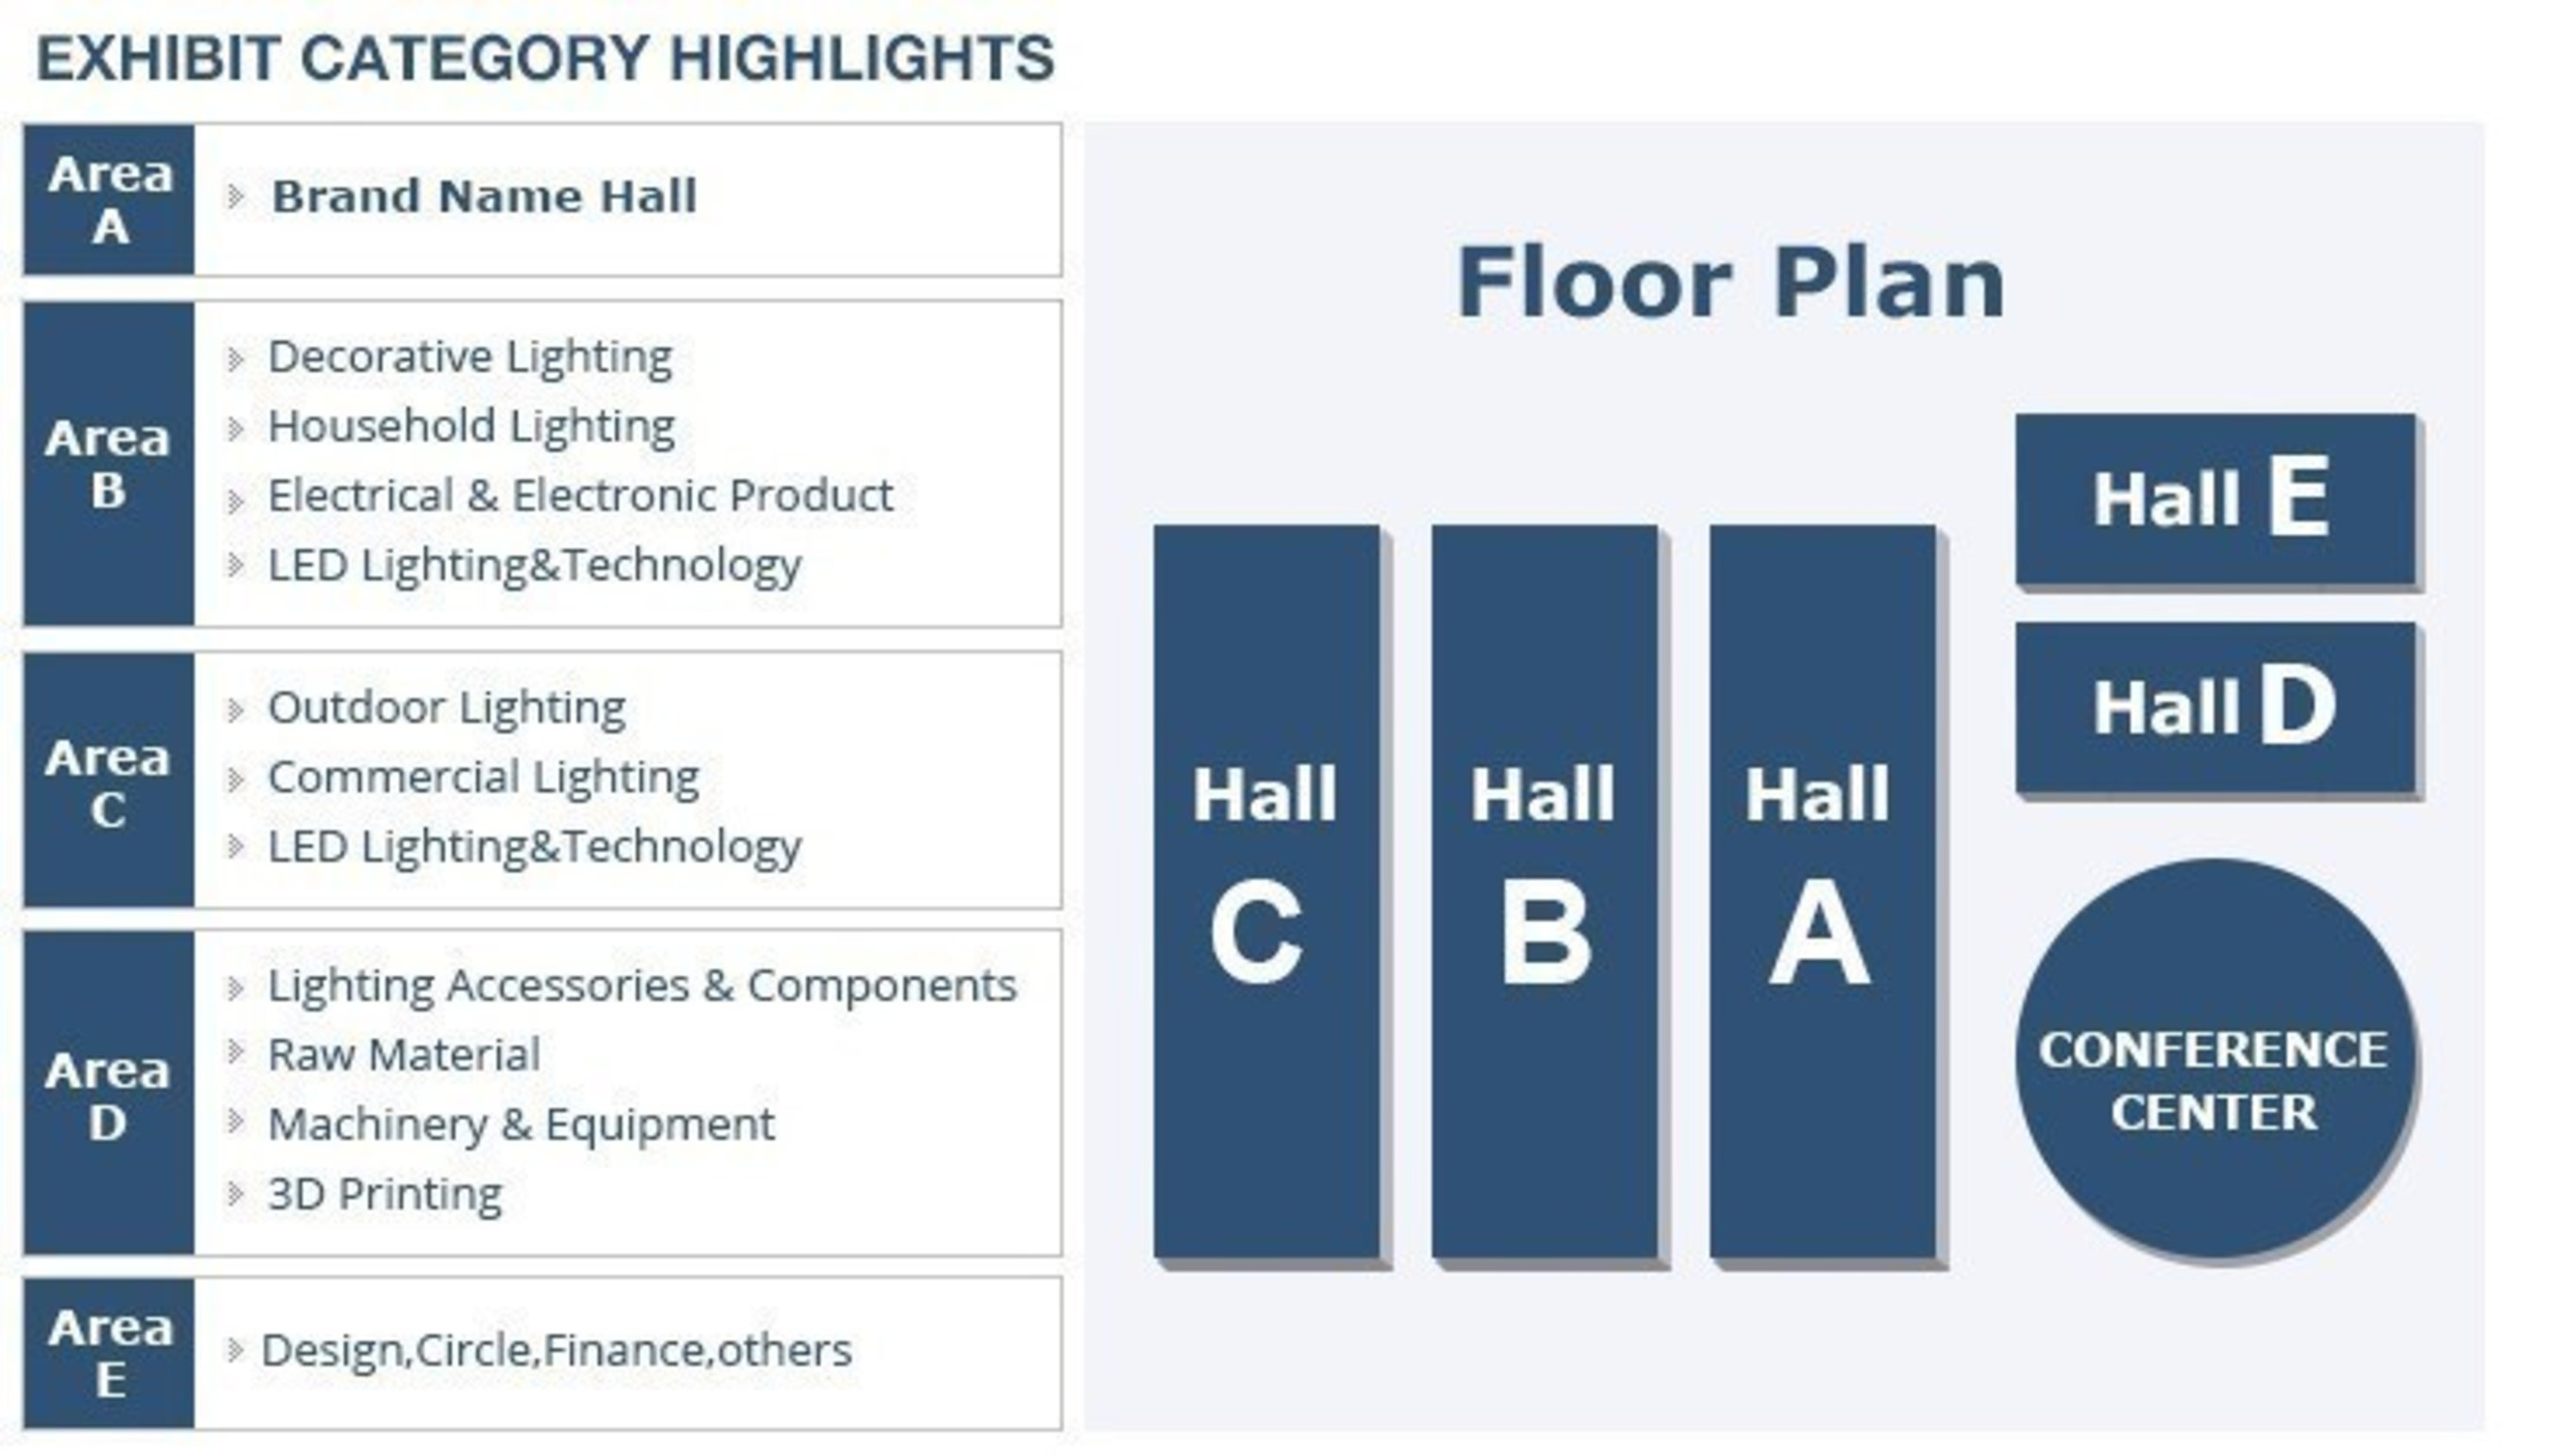 New Hall Layout Based in Science